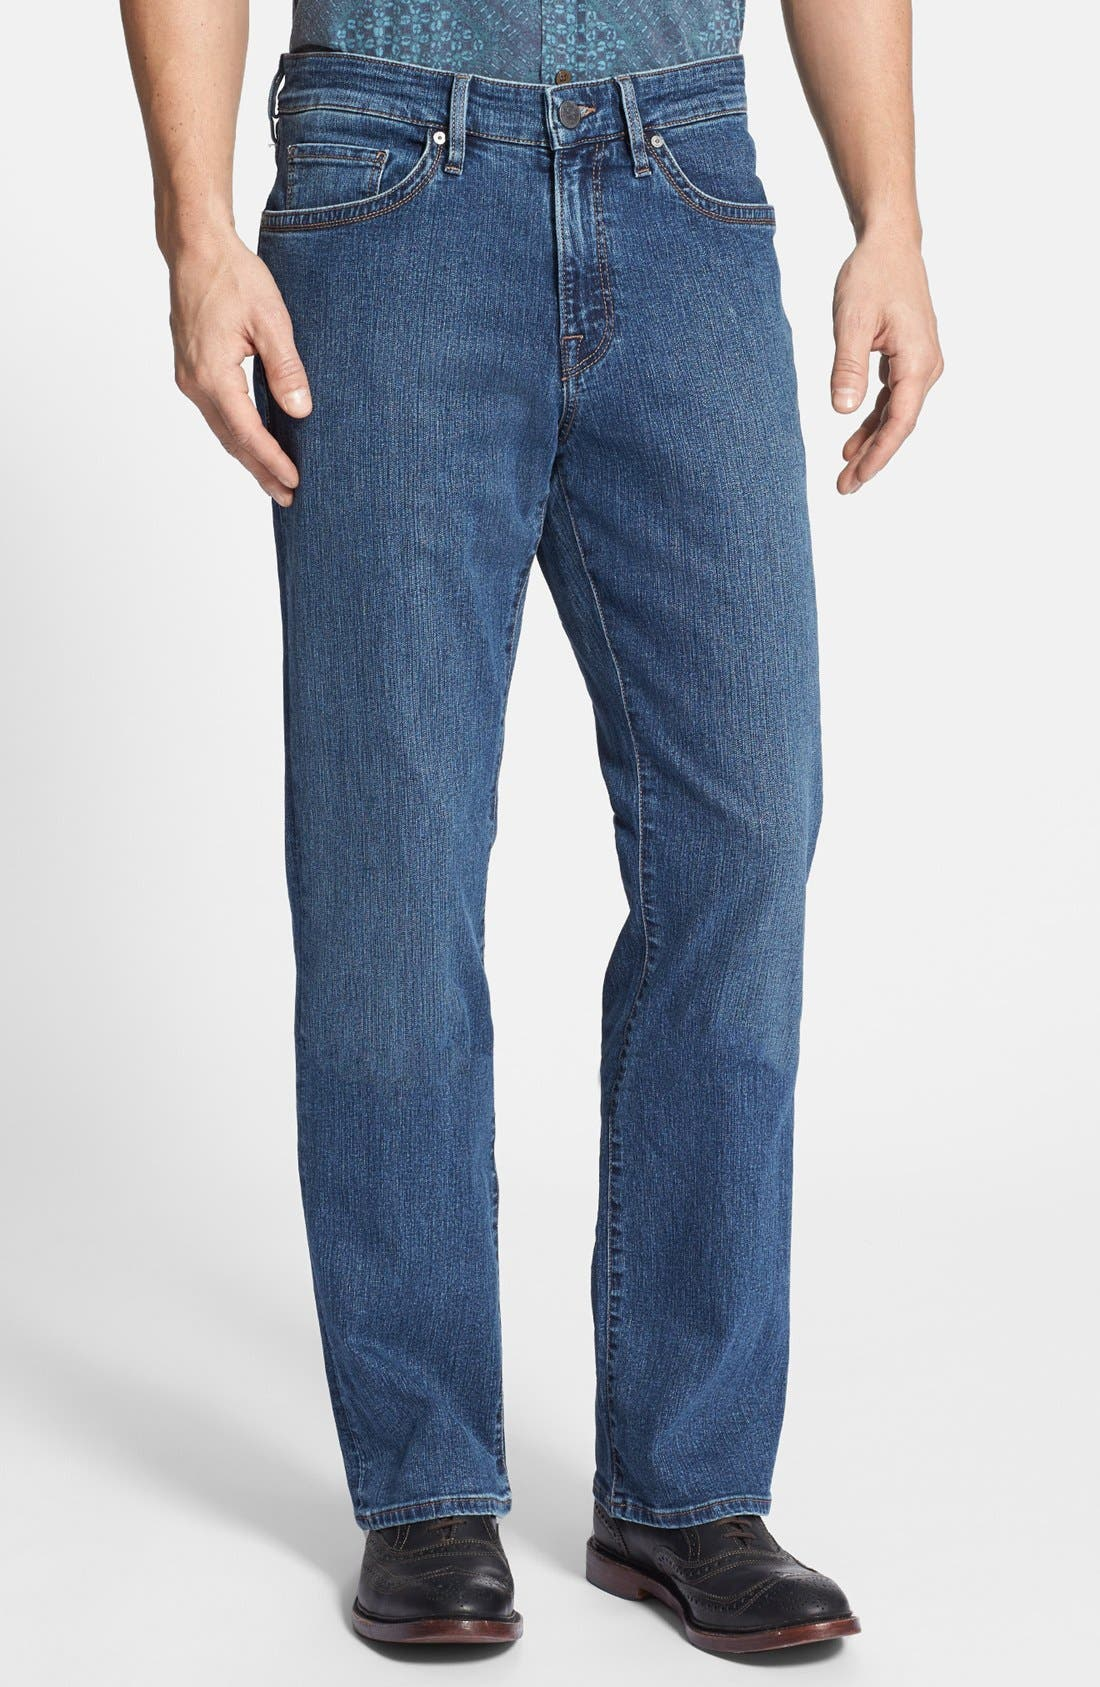 34 Heritage Charisma Classic Relaxed Fit Jeans (Mid Comfort) (Regular & Tall)